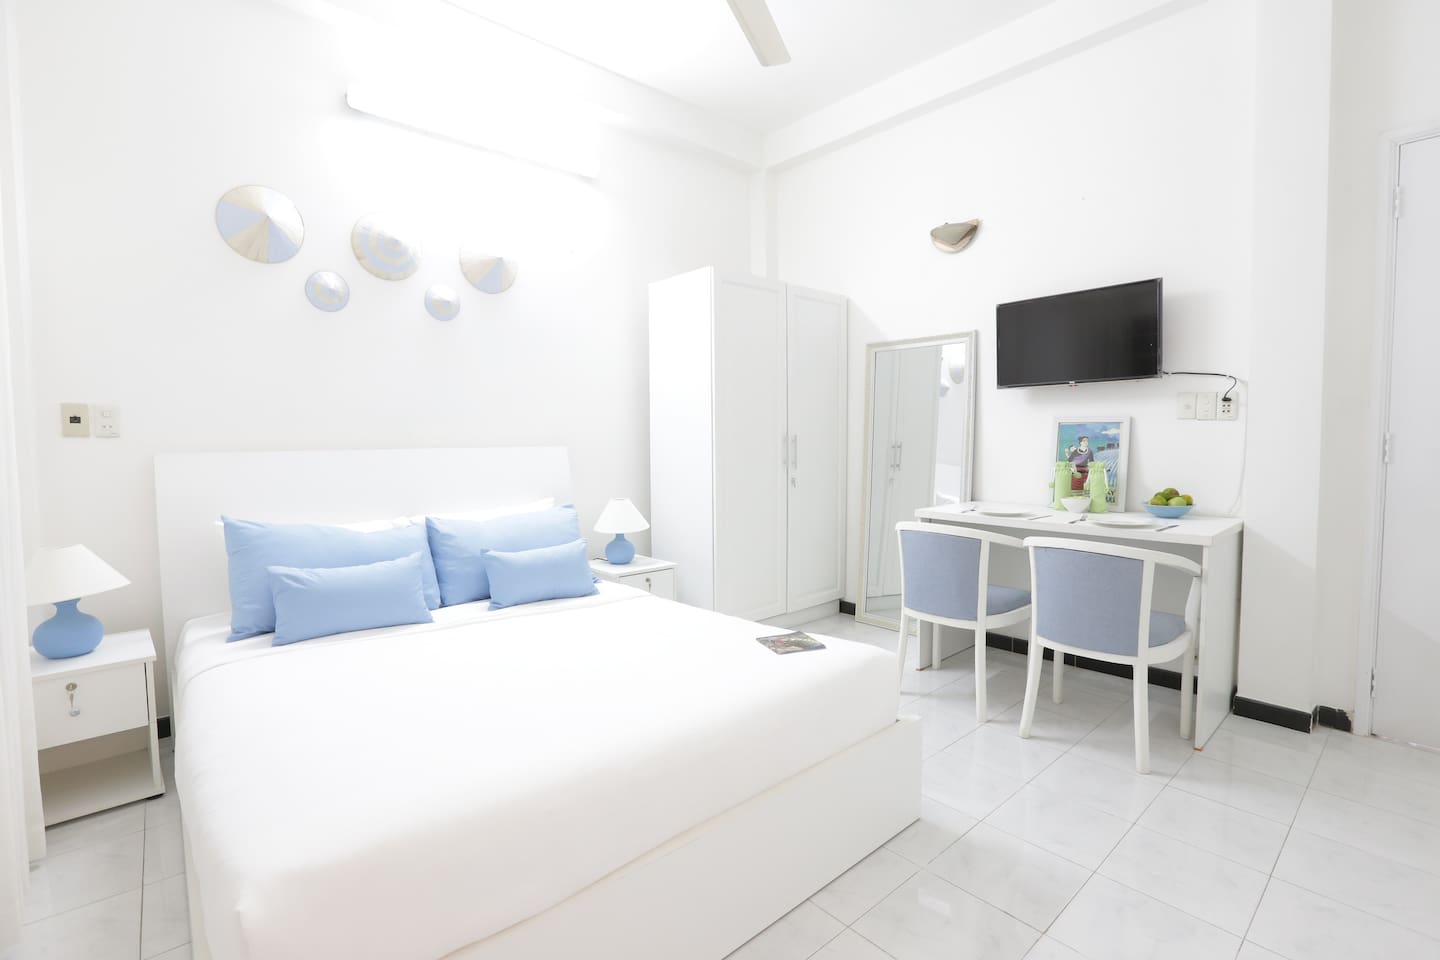 Kết quả hình ảnh cho vis estate was voted the most estate business that provide the most beautiful and cozy Apartment for rent in hcmc for foreigners